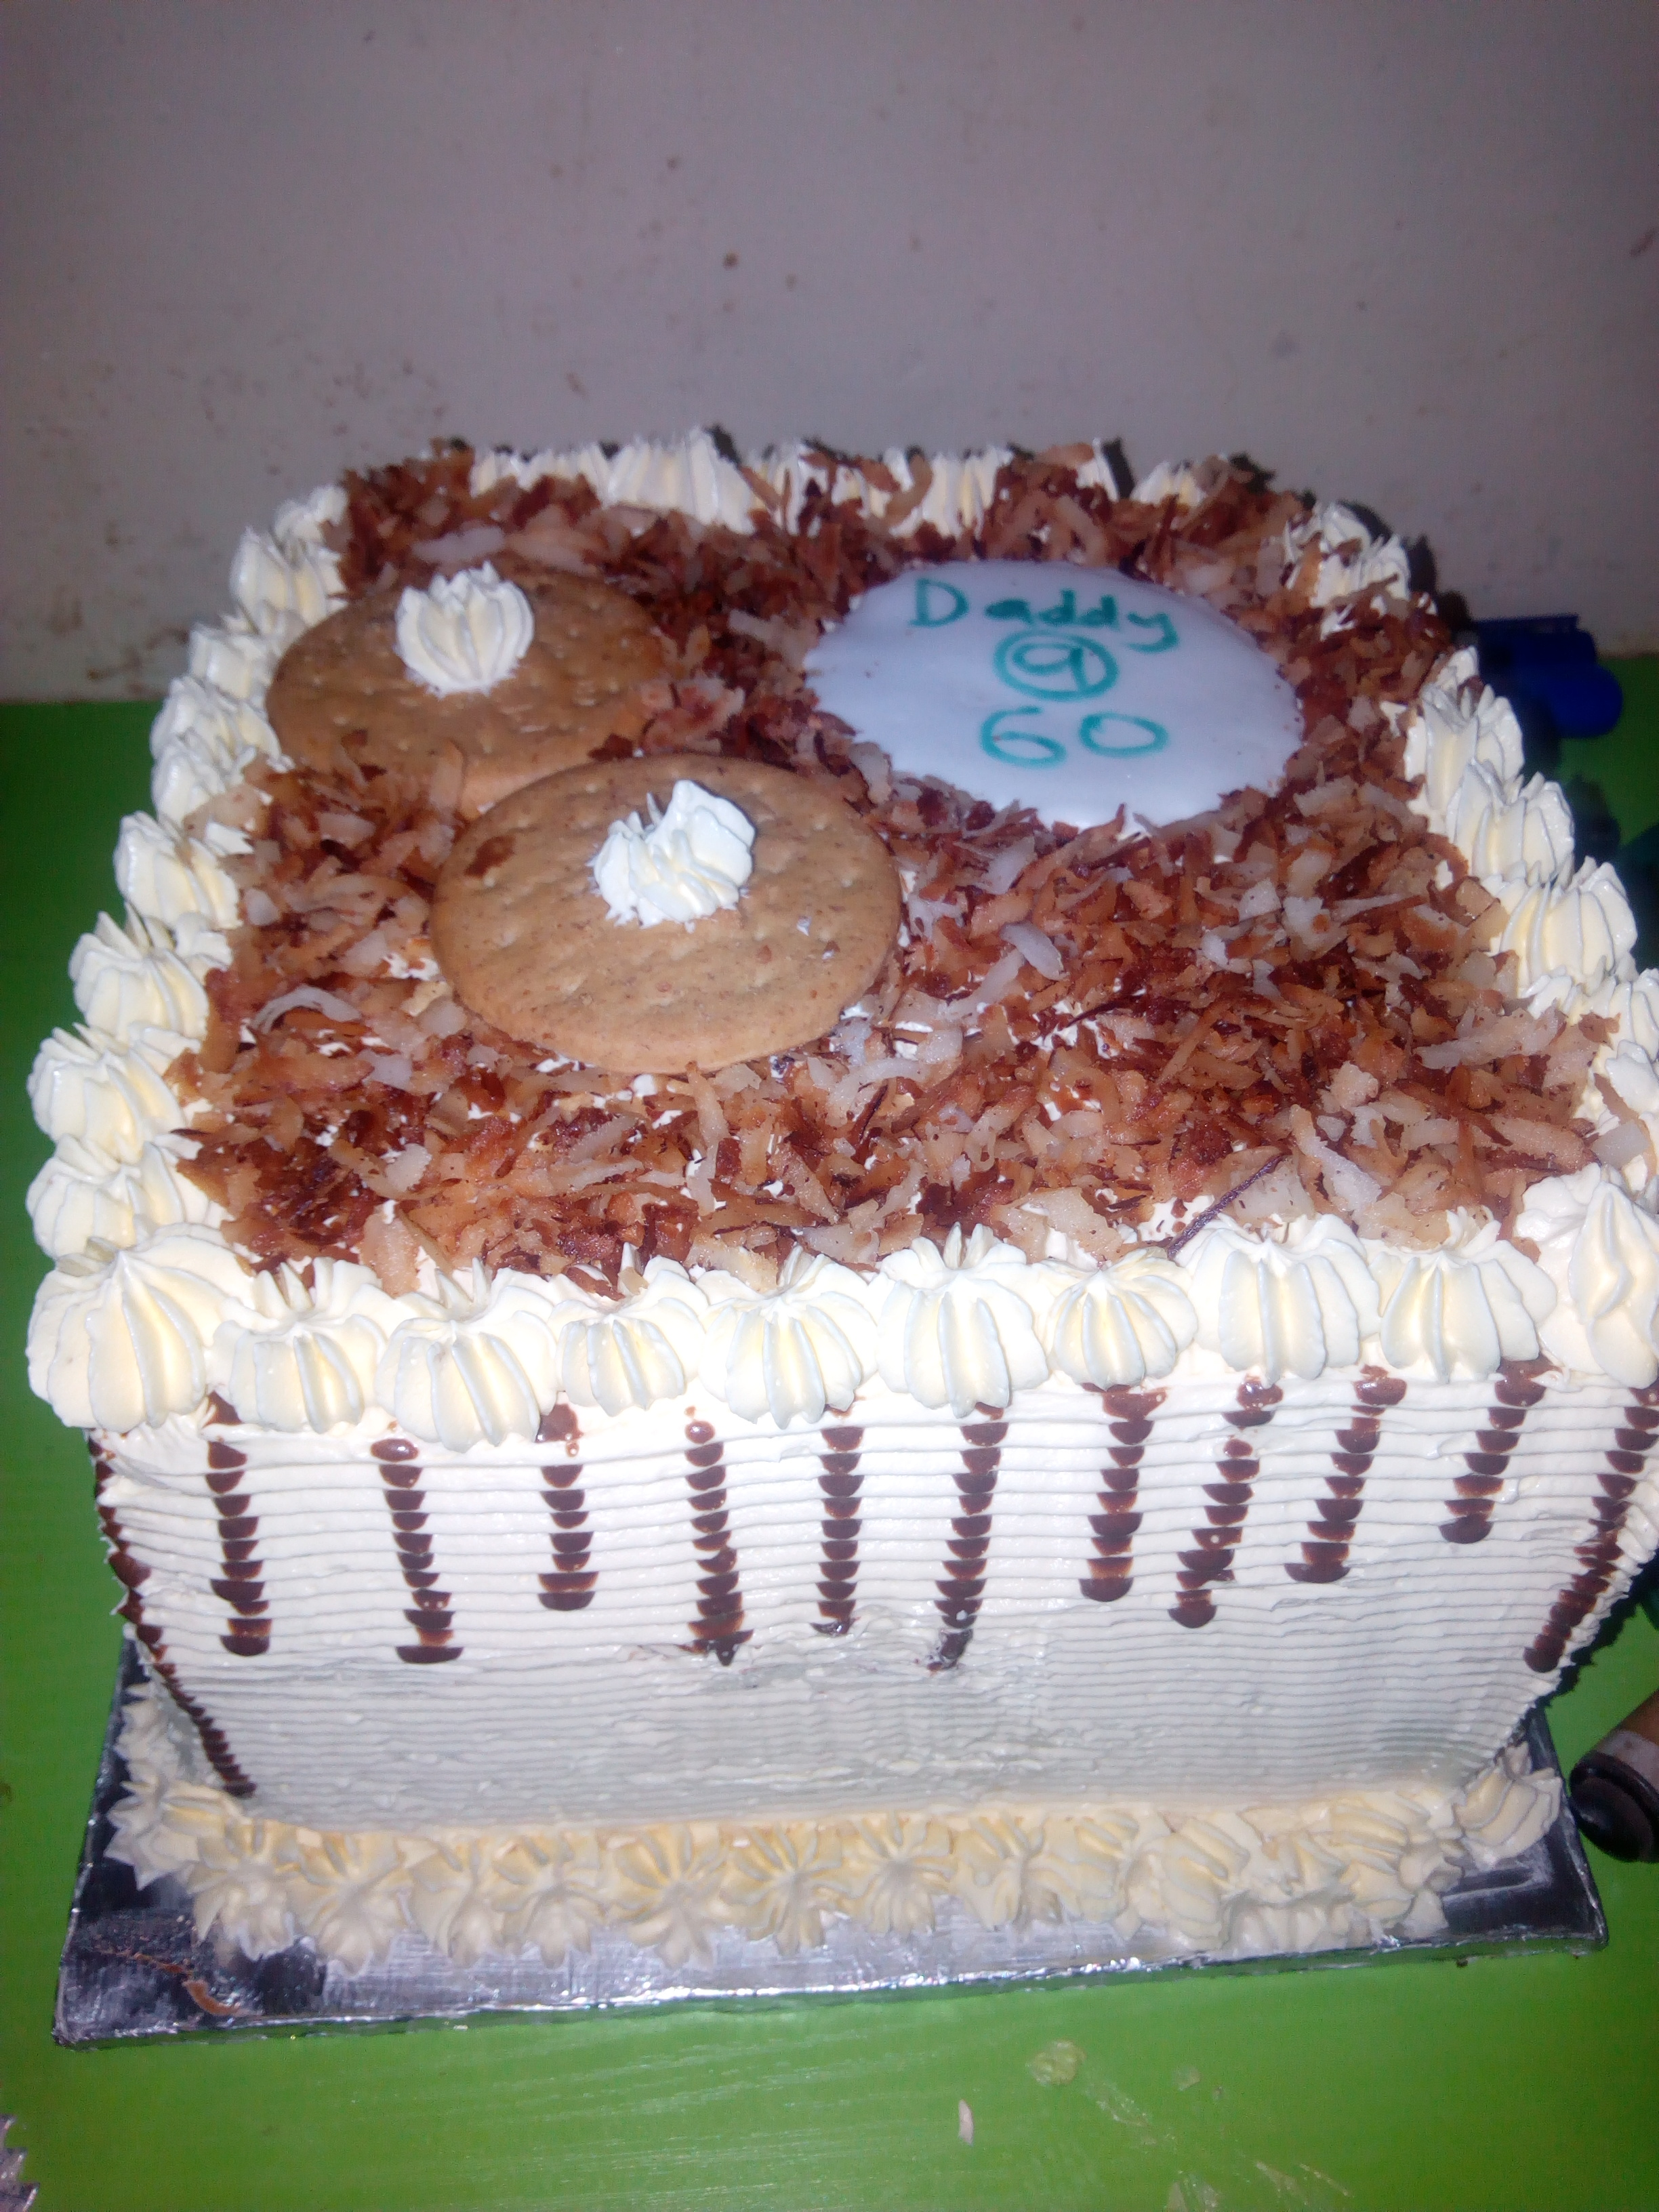 Cake Baking, Pastry and Decoration class